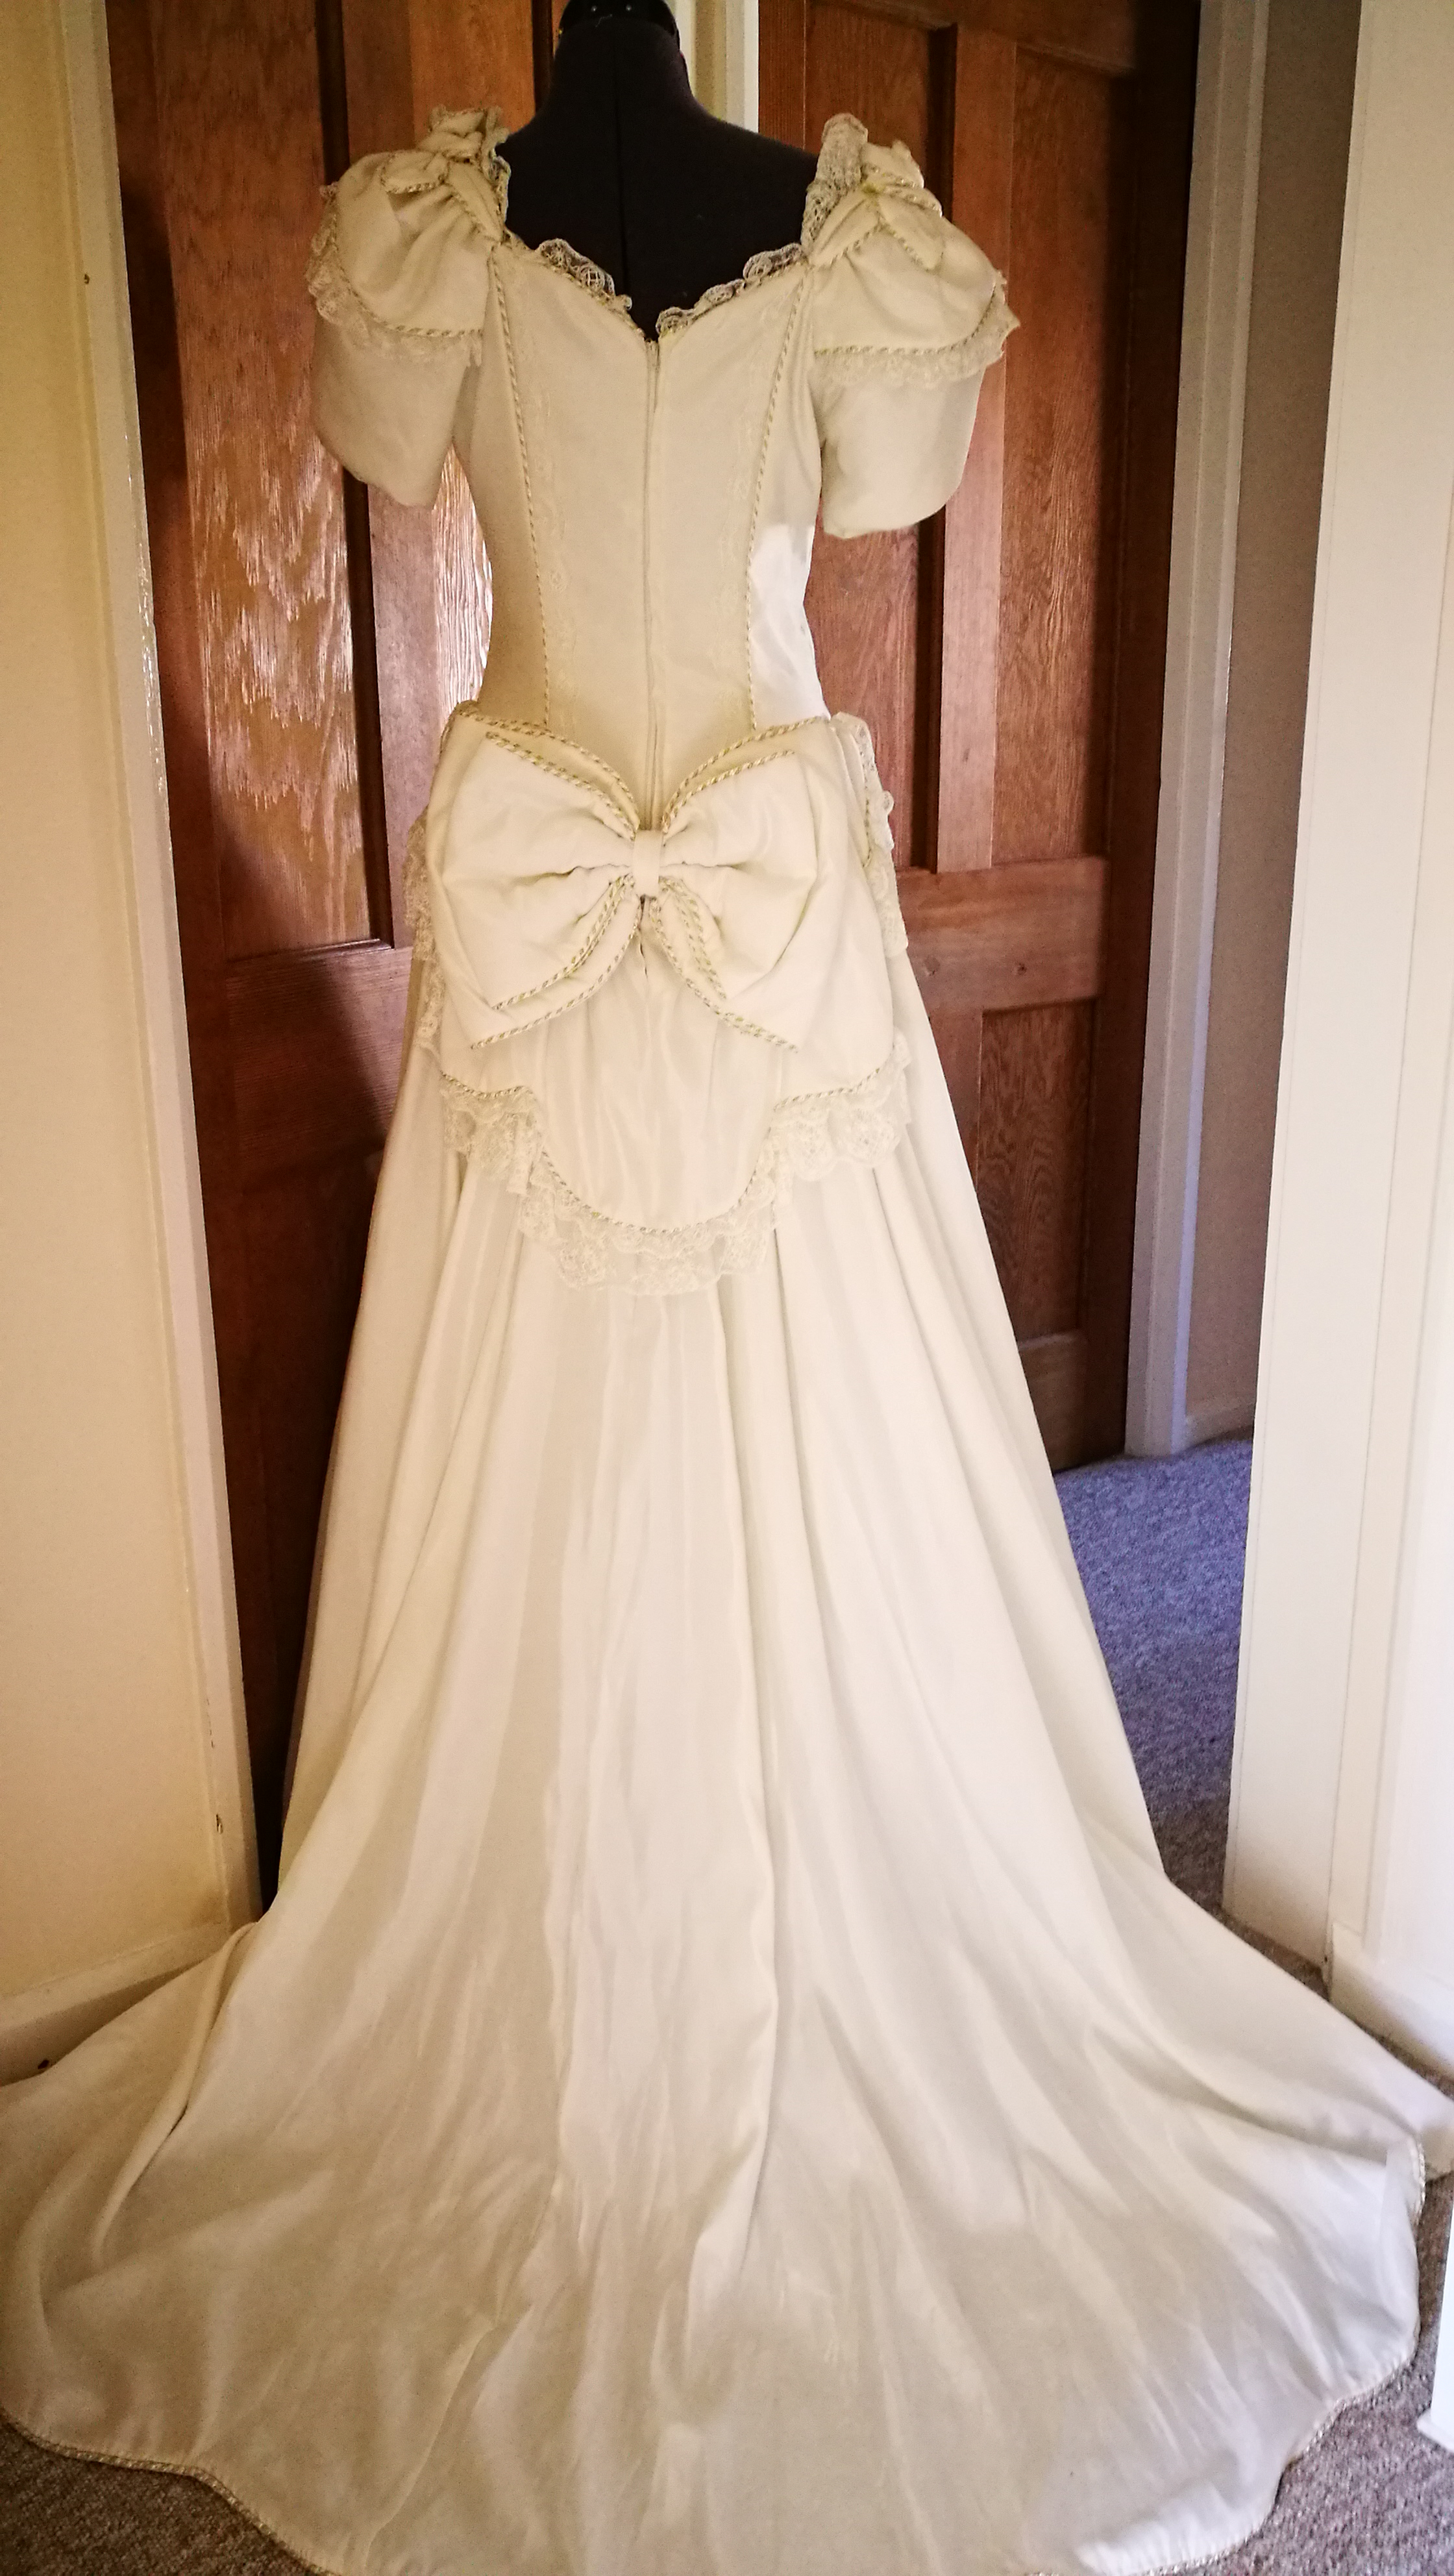 Repurposing a 1980s wedding dress